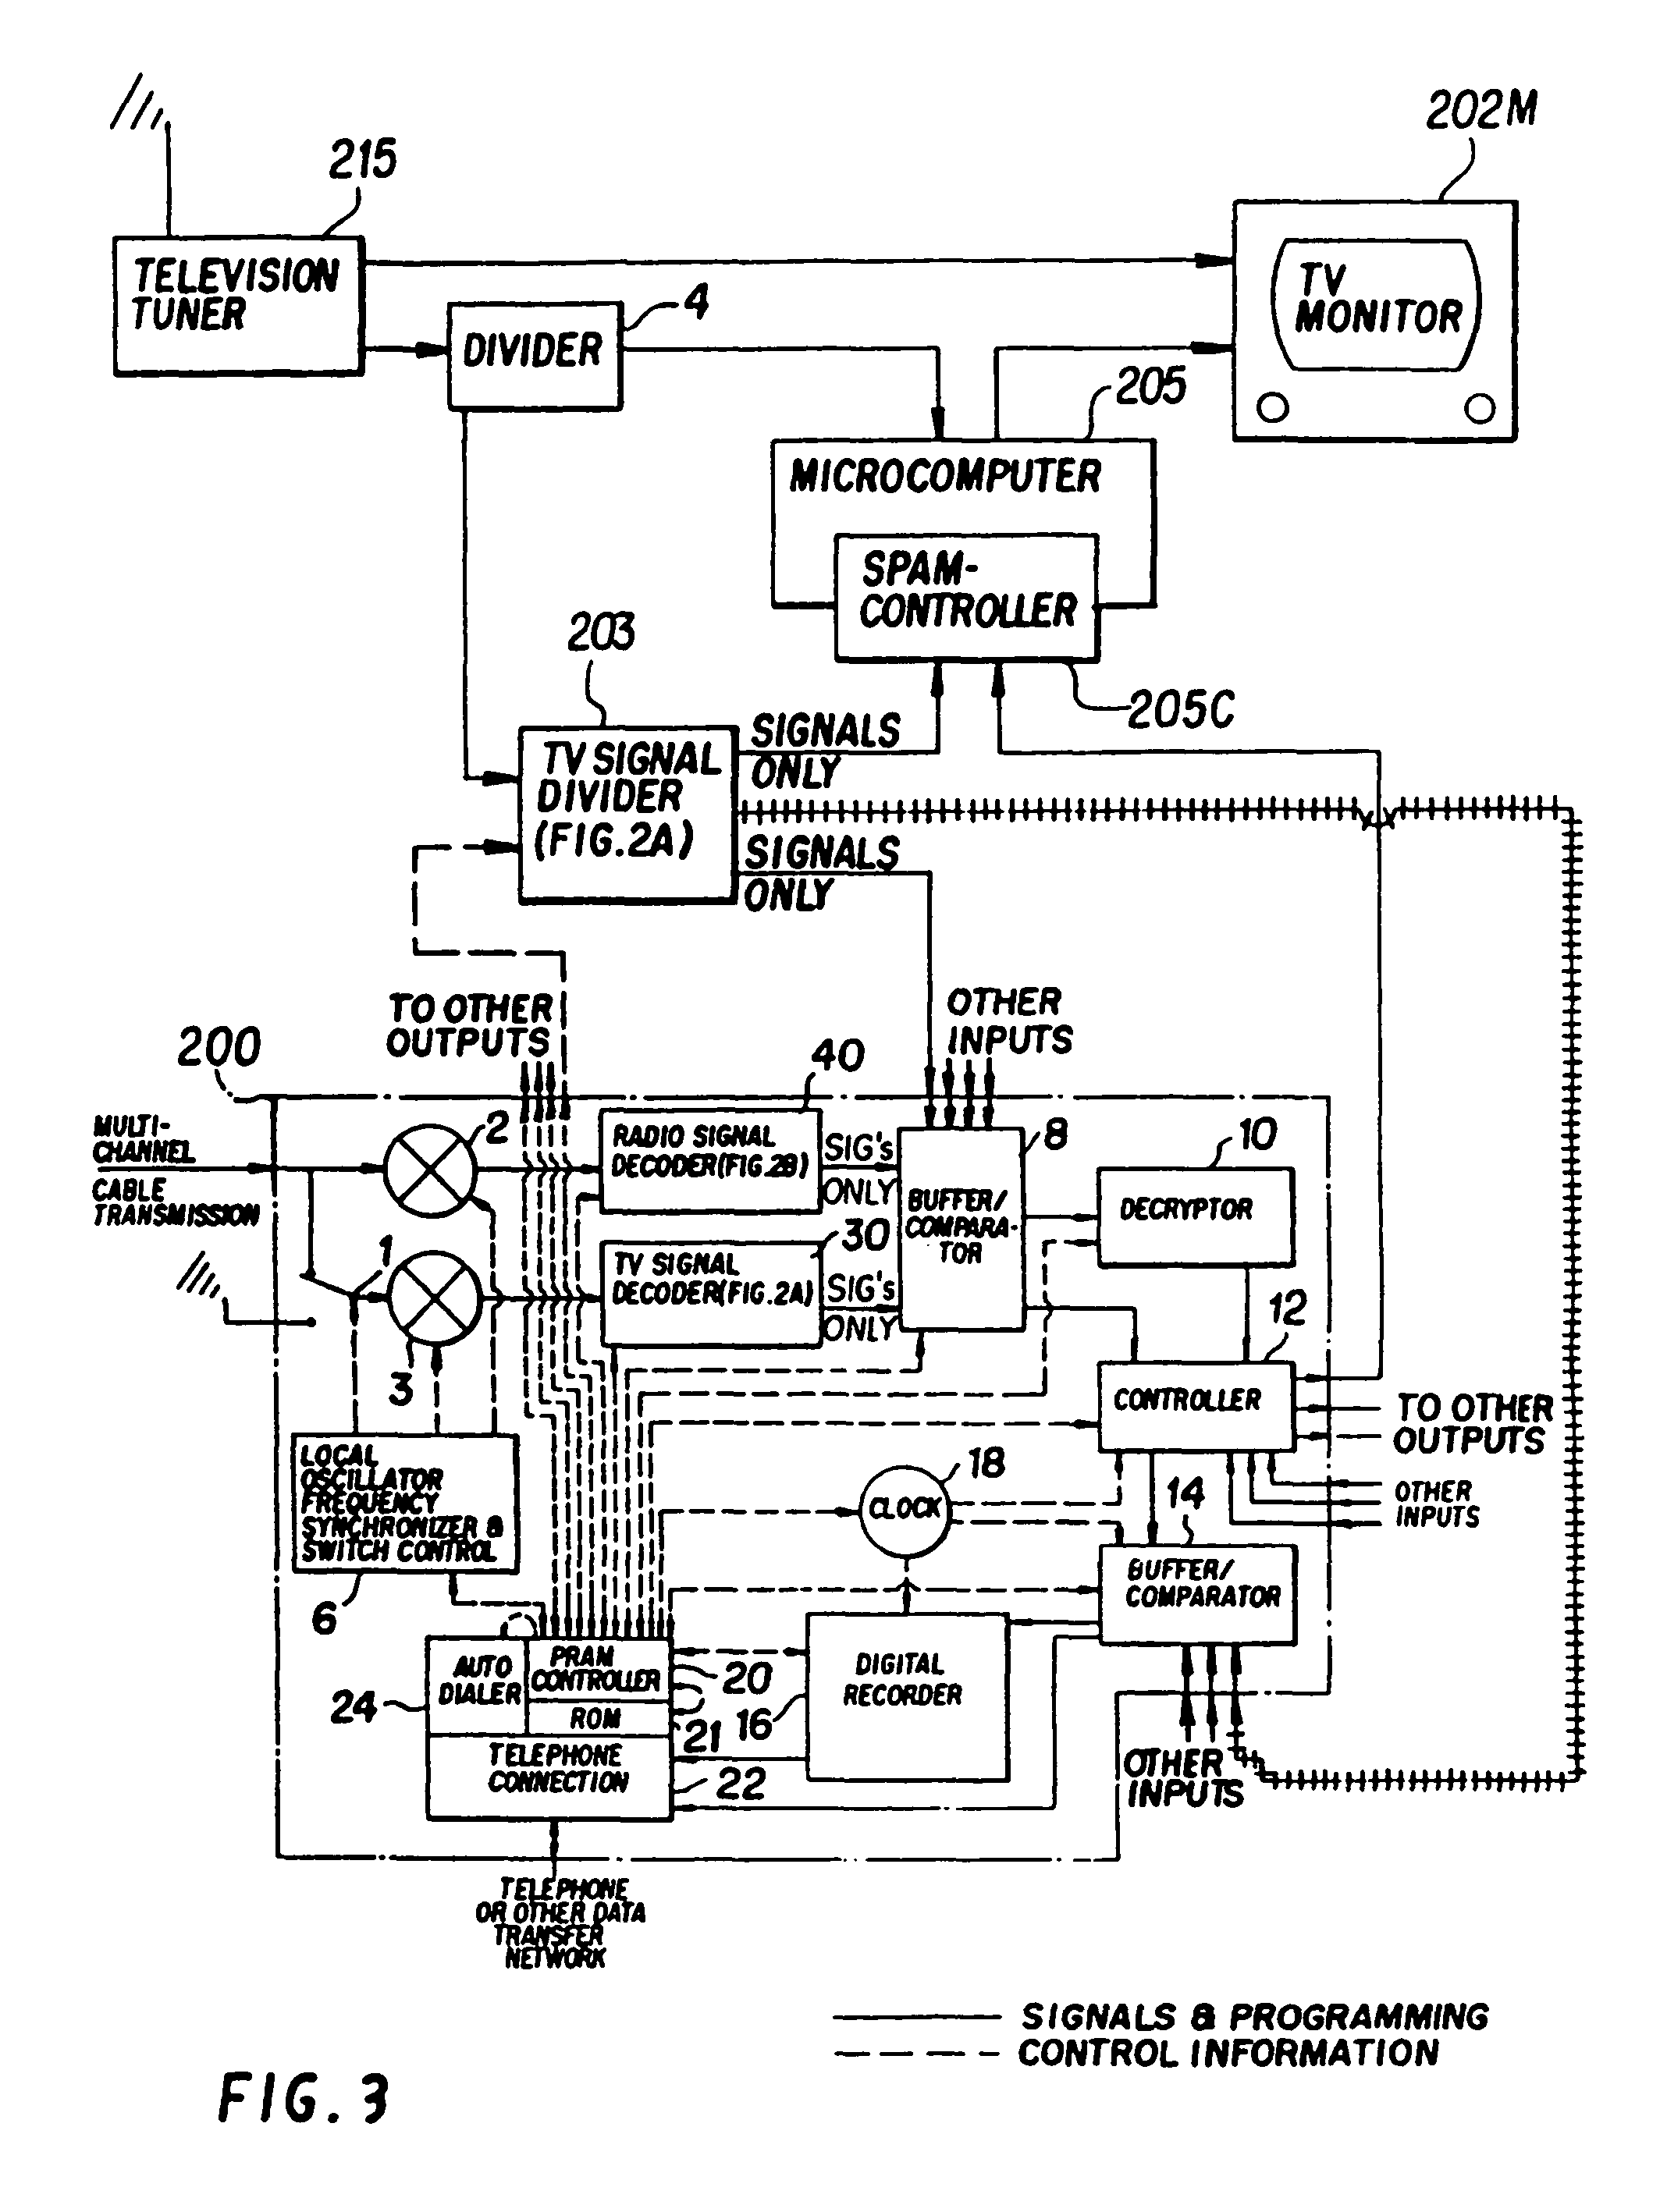 US7966640B1 - Signal processing apparatus and methods - Google Patents